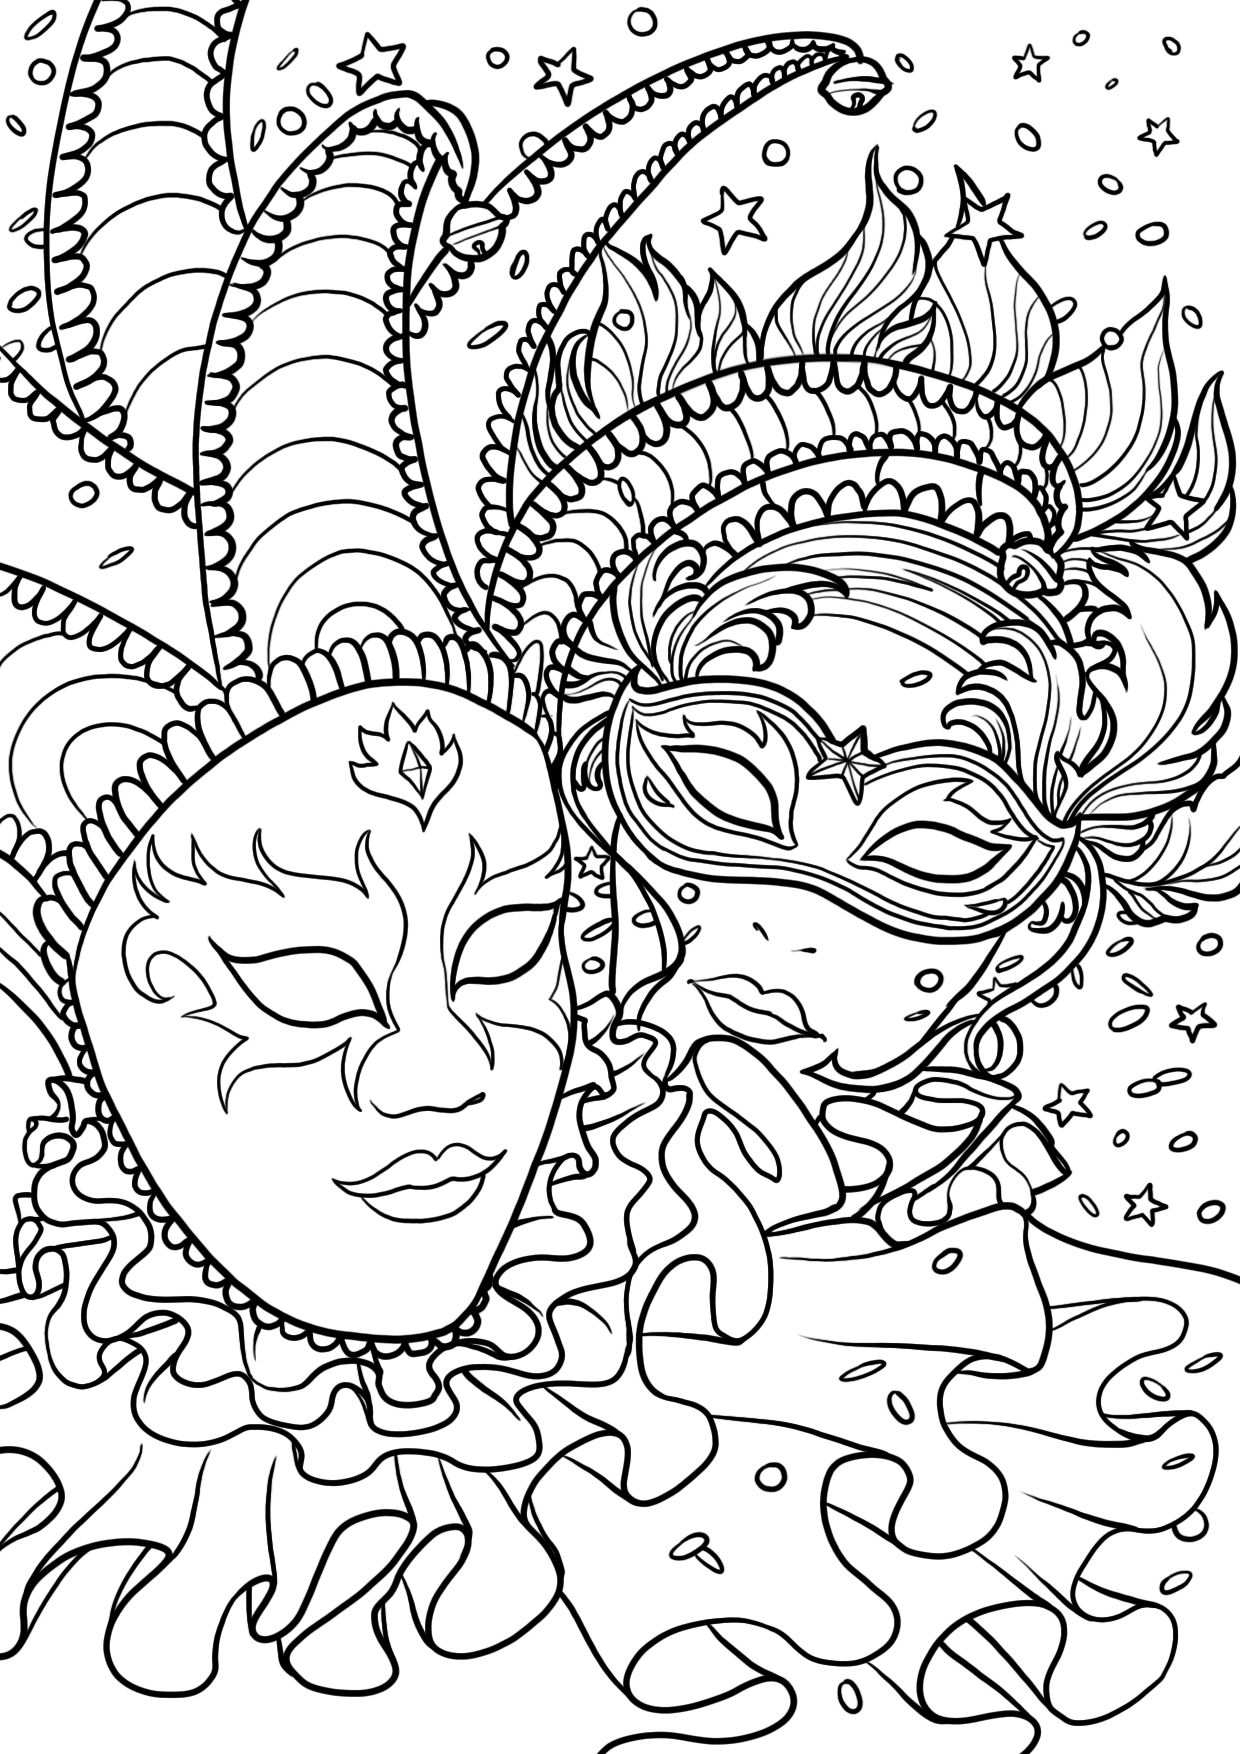 Coloriage carnaval coloriage coloring pages adult coloring et adult coloring pages - Coloriage masque ...